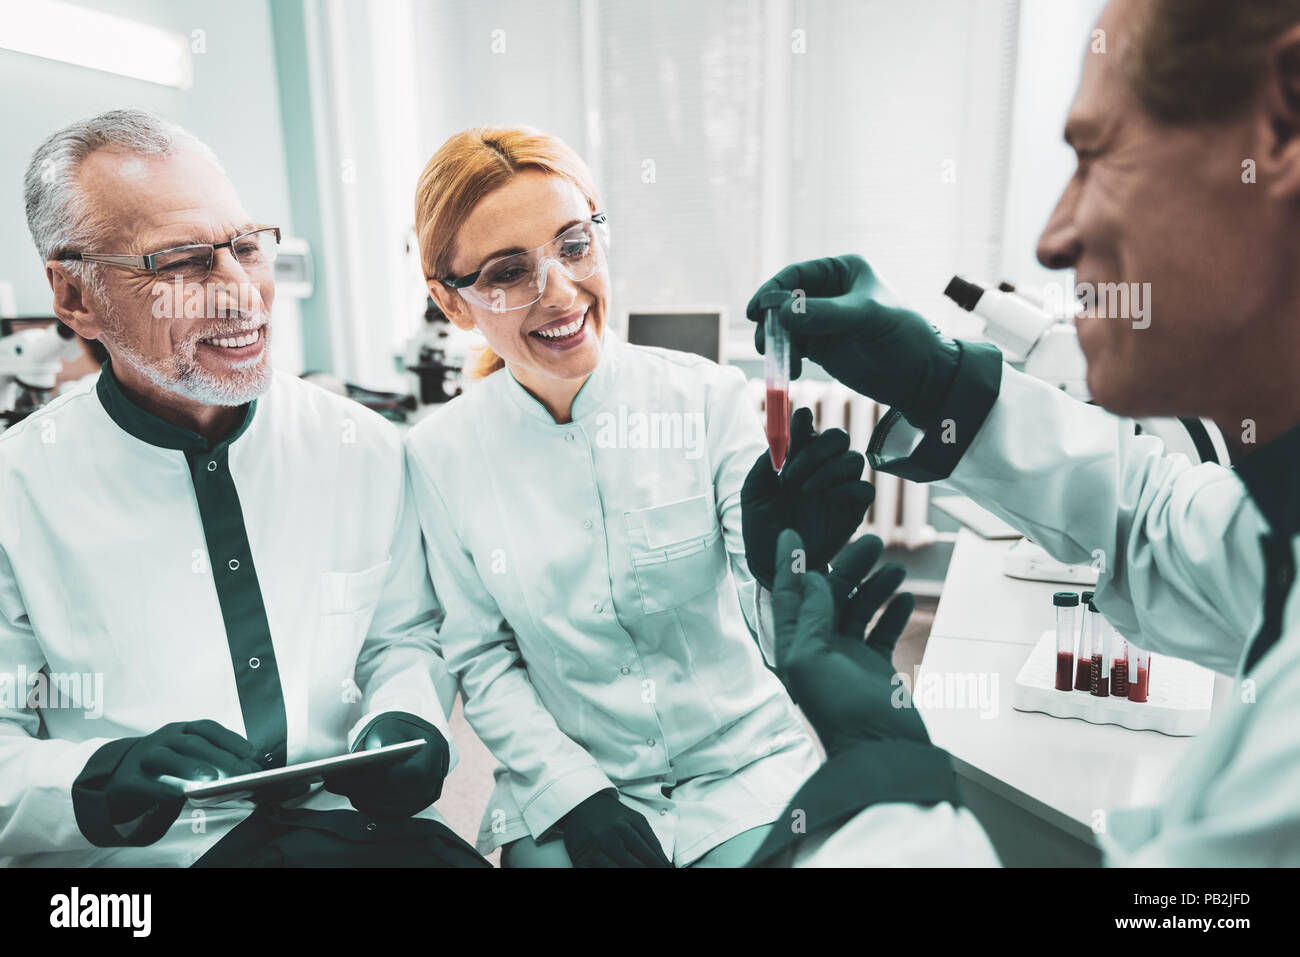 Trio of smiling medical workers enjoying completing task - Stock Image